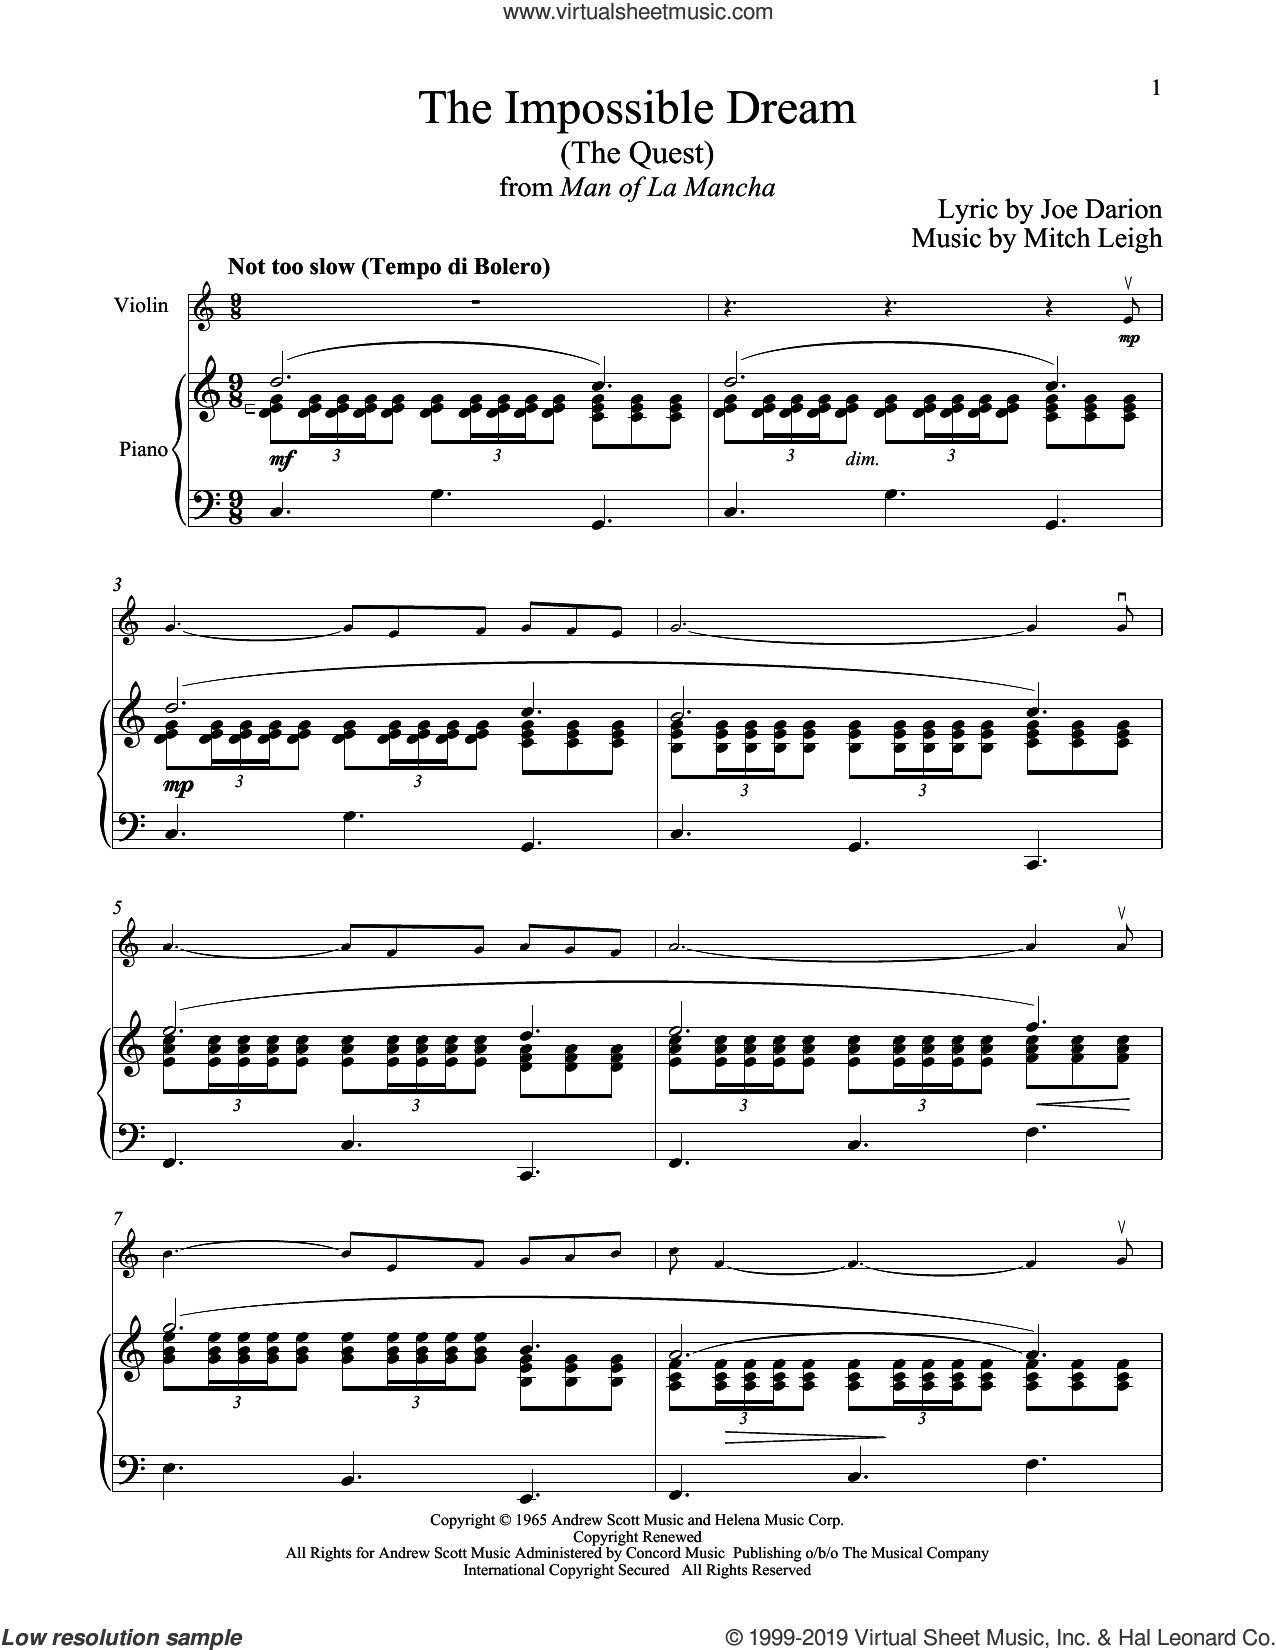 The Impossible Dream (The Quest) (from Man Of La Mancha) sheet music for violin and piano by Mitch Leigh and Joe Darion, intermediate skill level